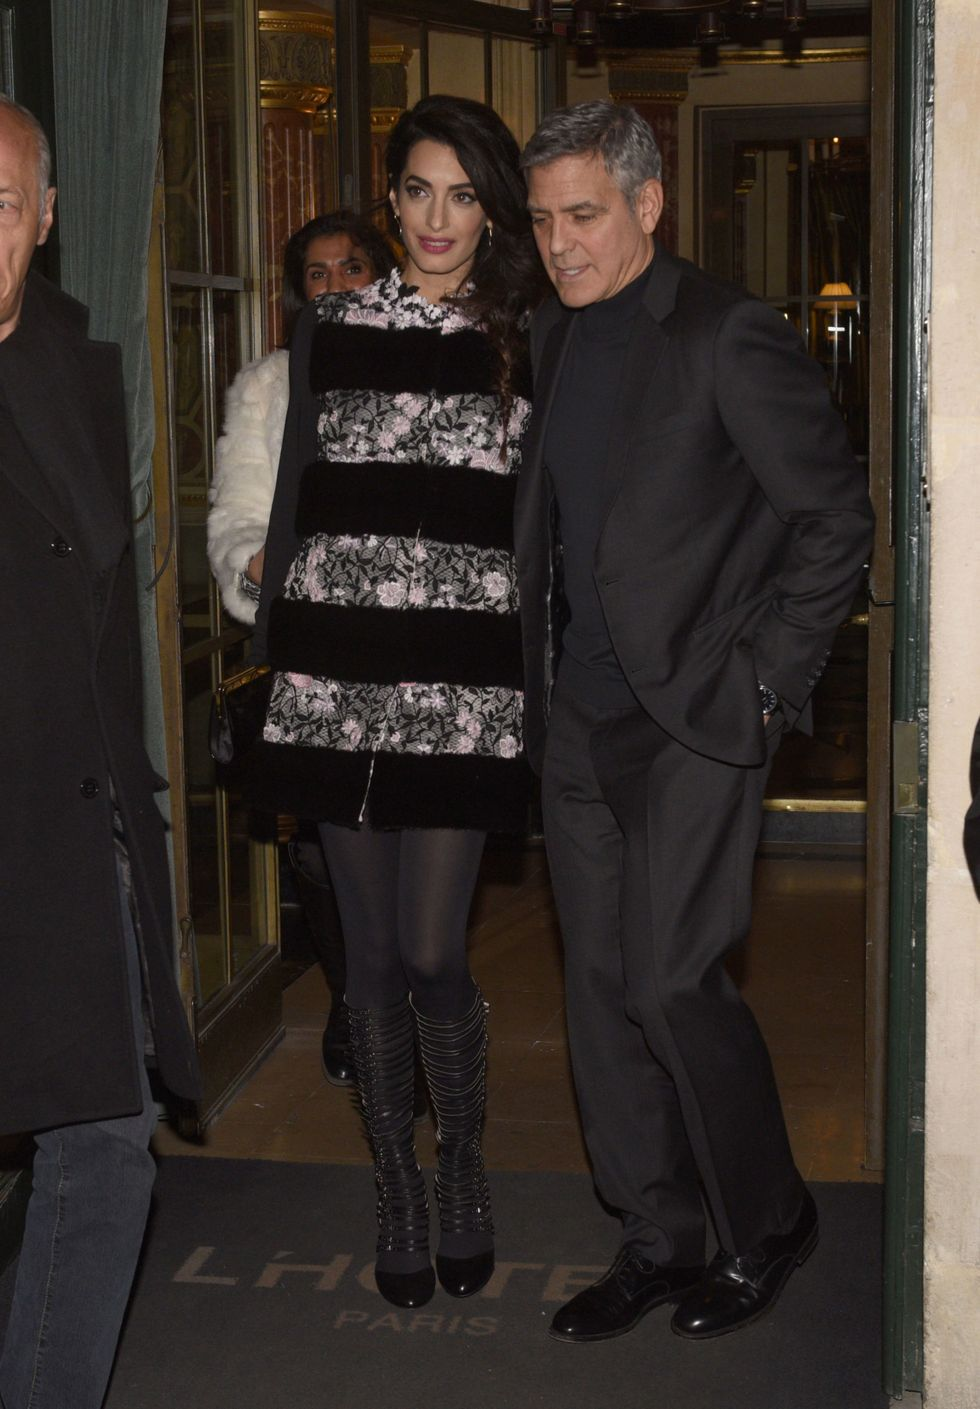 February 25, 2017 With George Clooney, leaving their hotel in Paris.